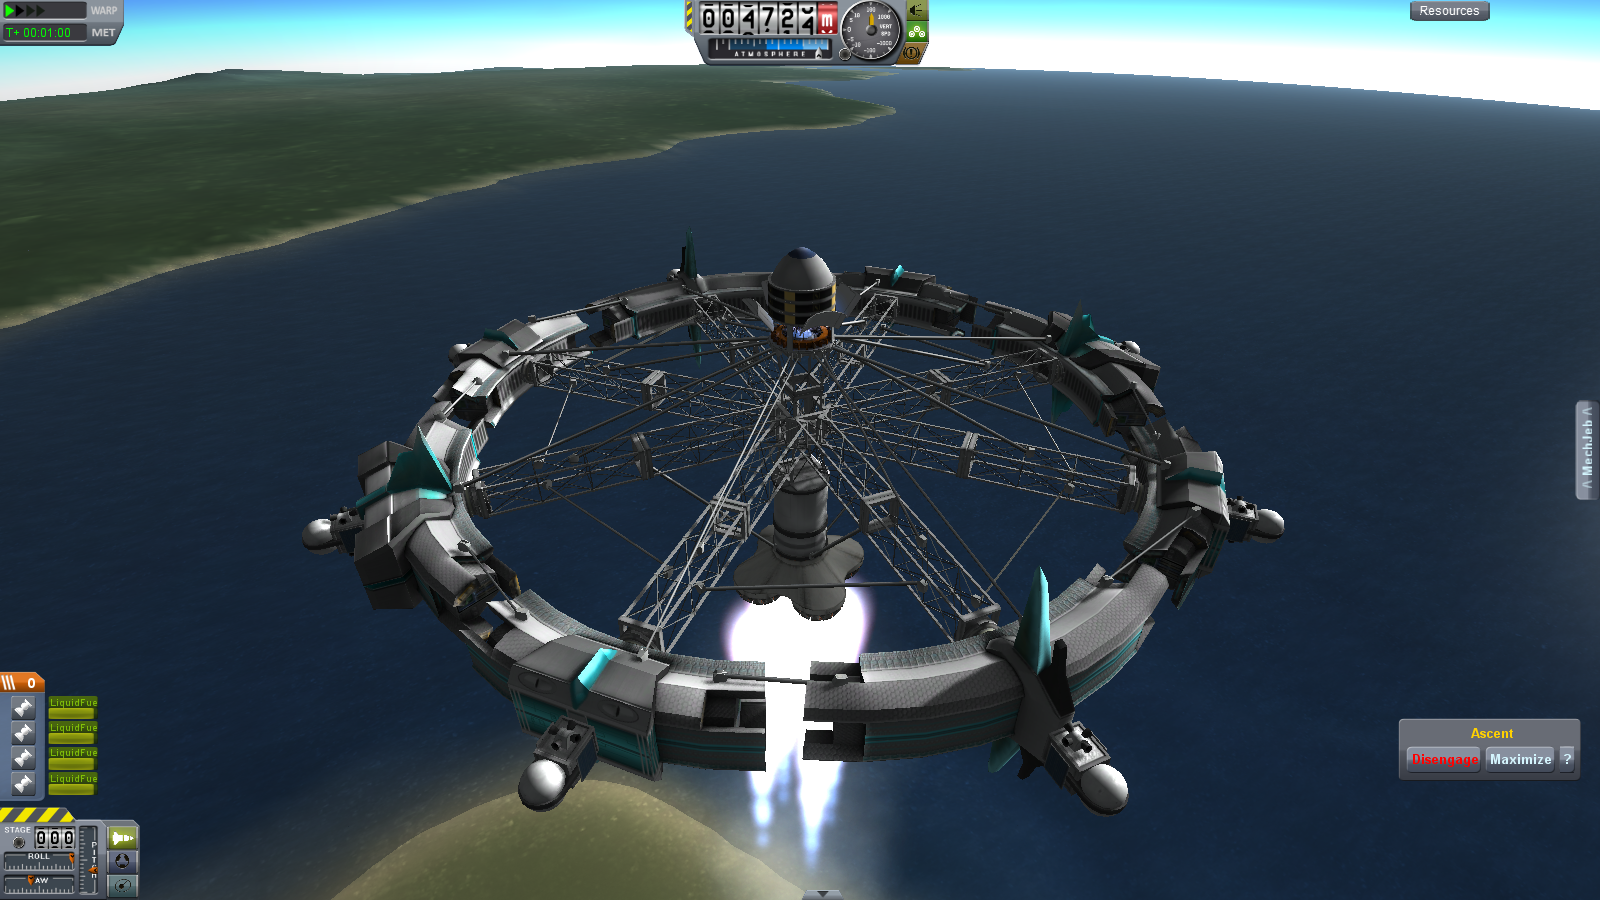 kerbal space program demo - photo #39